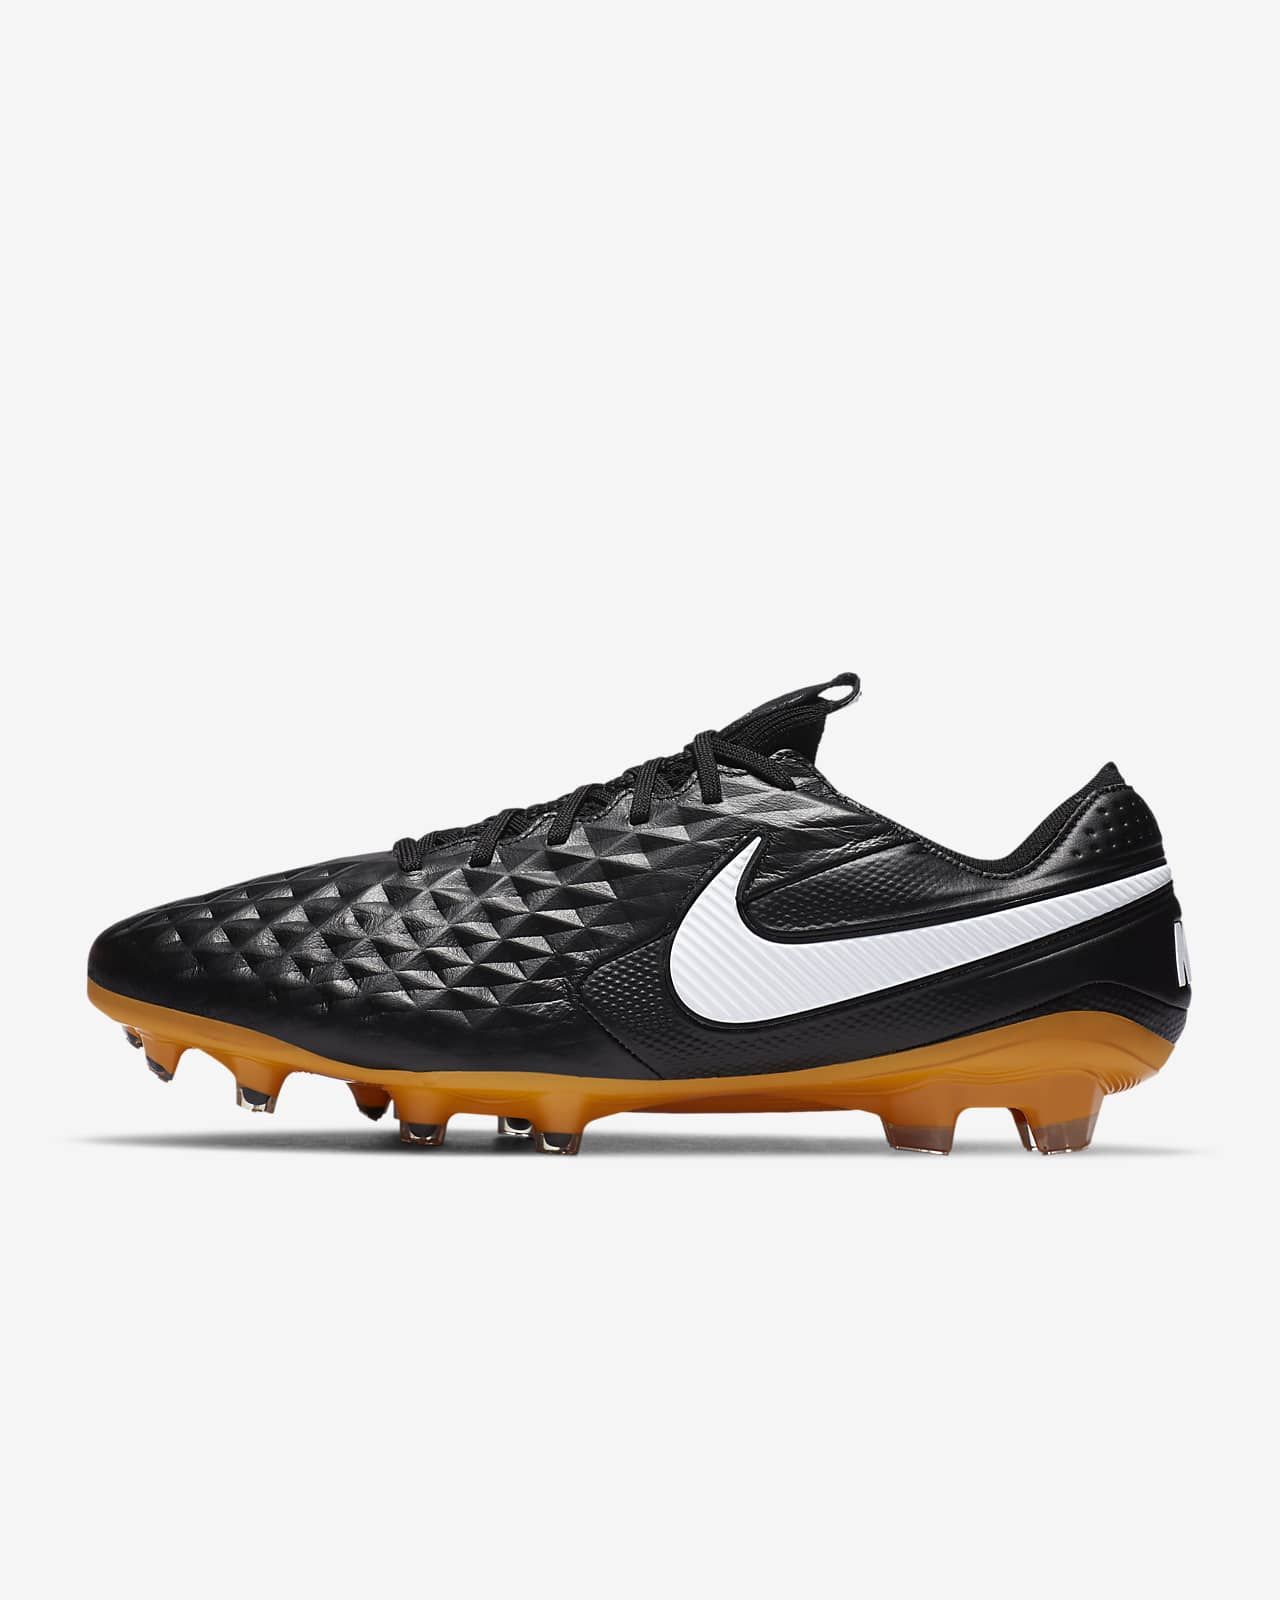 Nike Tiempo Legend 8 Elite Tech Craft FG Botas de fútbol para terreno firme